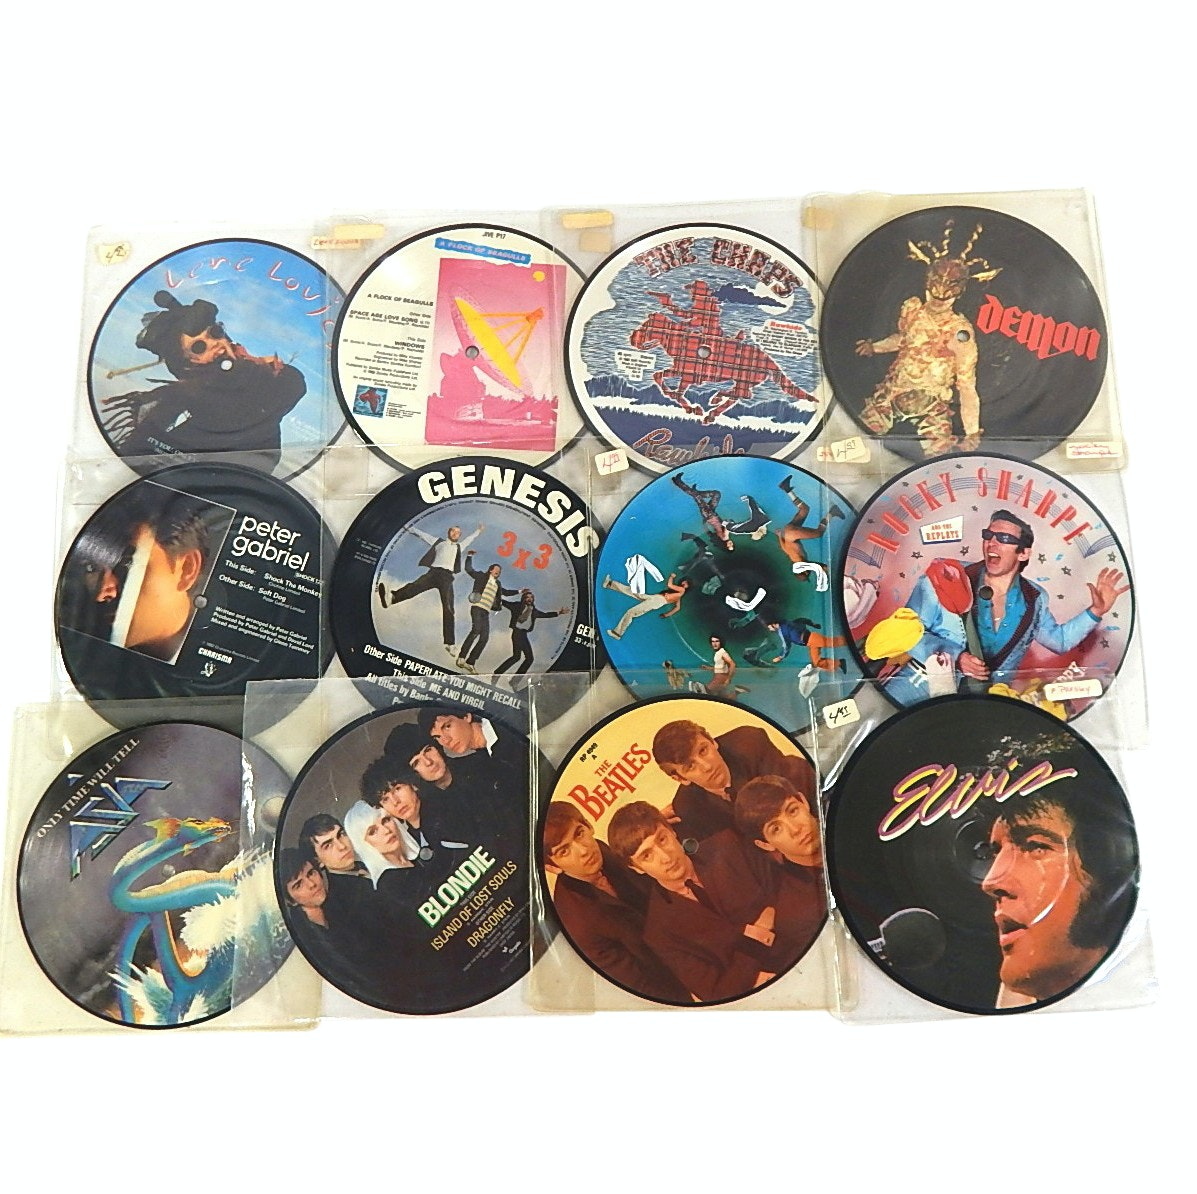 1980s 45 RPM Picture Discs with The Beatles, Elvis Presley, Blondie, More